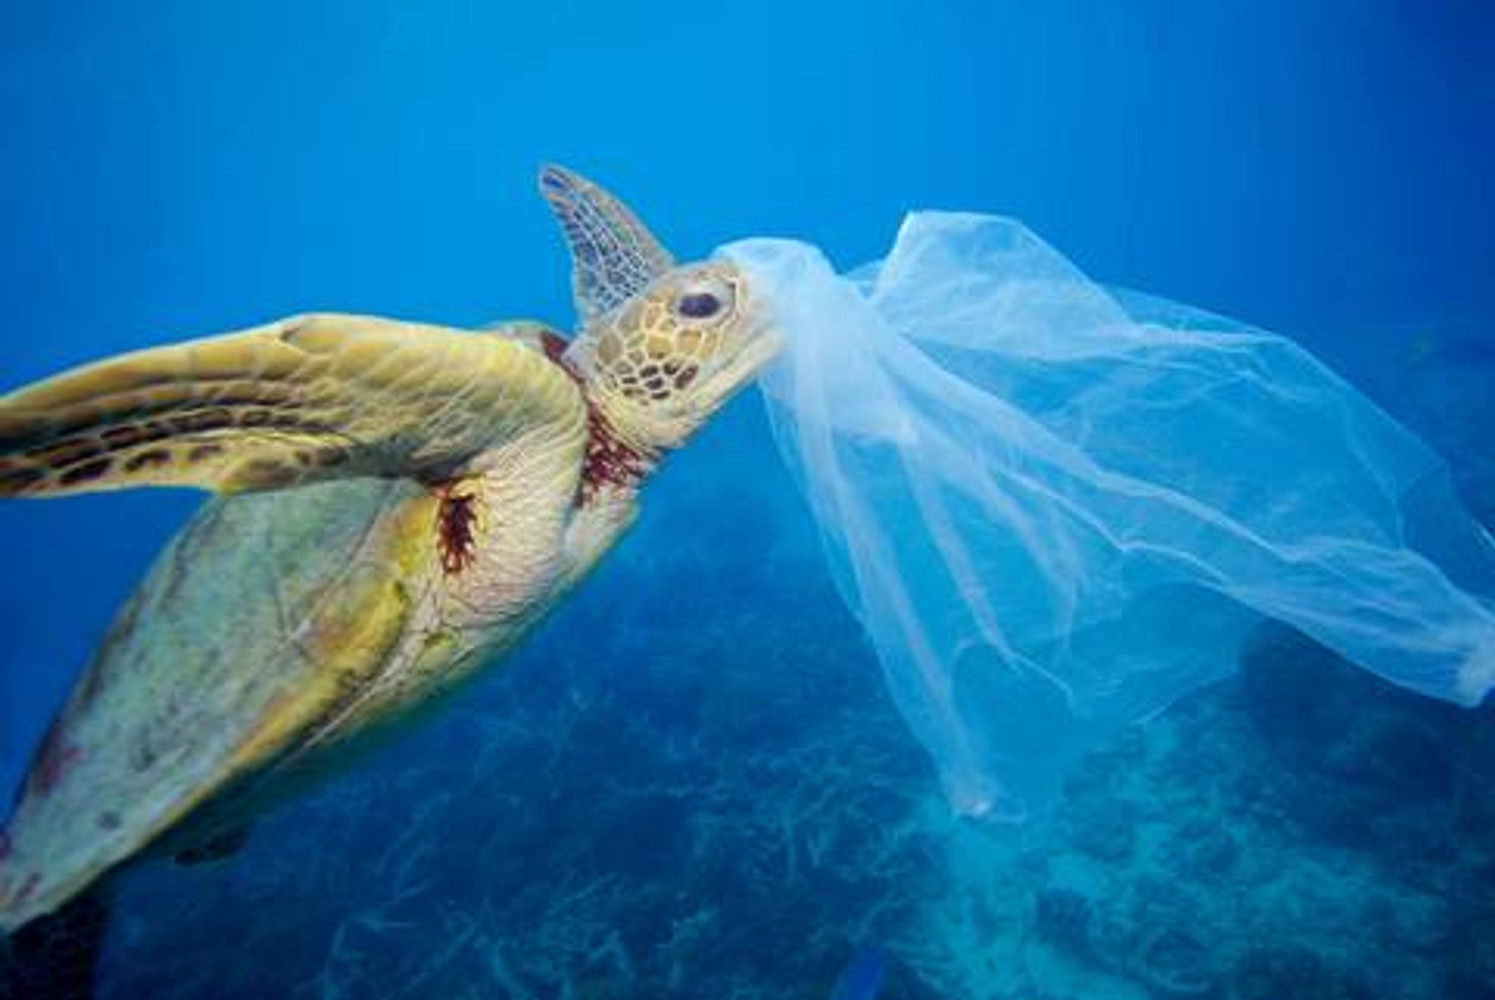 How do plastic bags impact our environment?